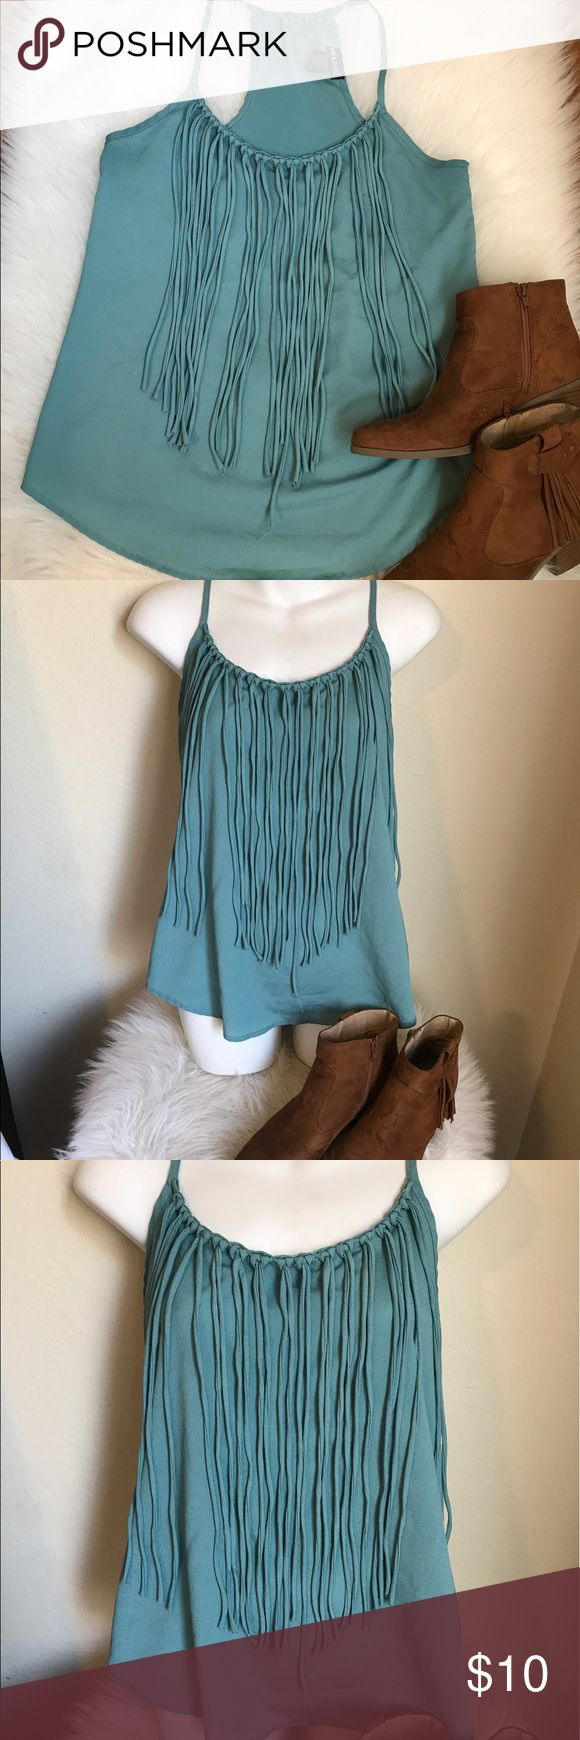 💐Lovely teal fringe racer back style top In excellent condition. Great go to relax wear. Very light fabric. Pair with jeans boot and denim jacket for a casual look or go with a black thick leggings with some pumps and accessories for a downtown chic look. 100% polyester Wet Seal Tops